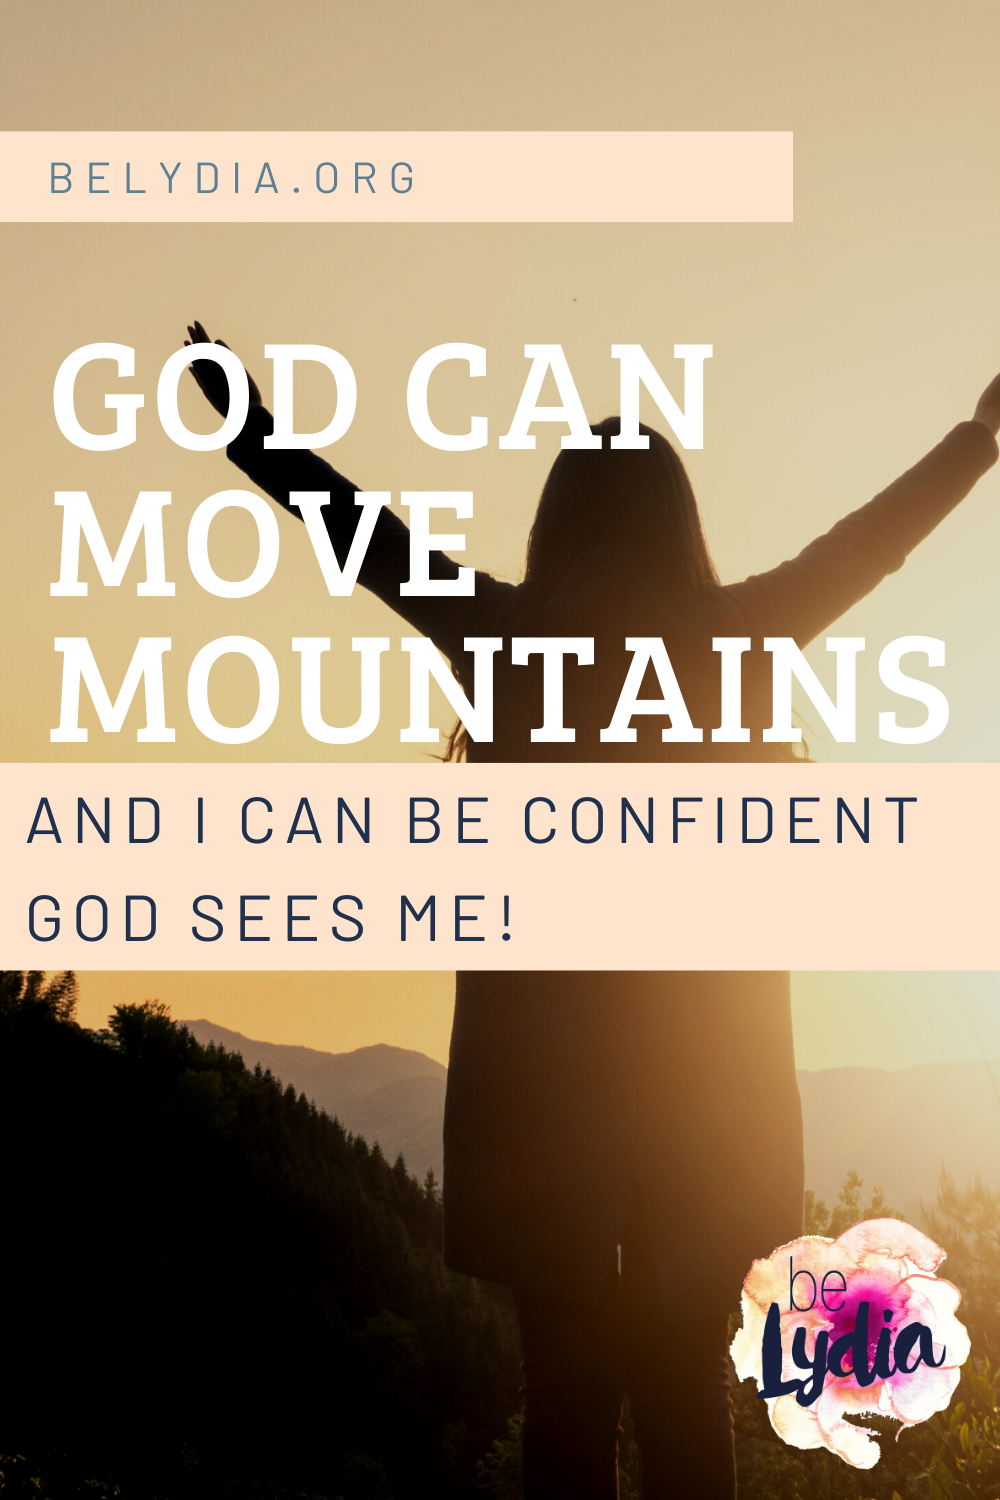 Have you wondered does God see me and if He does, what does He think of me? It is easy to feel small in a world full of amazing people. But you can be confident that God sees YOU!